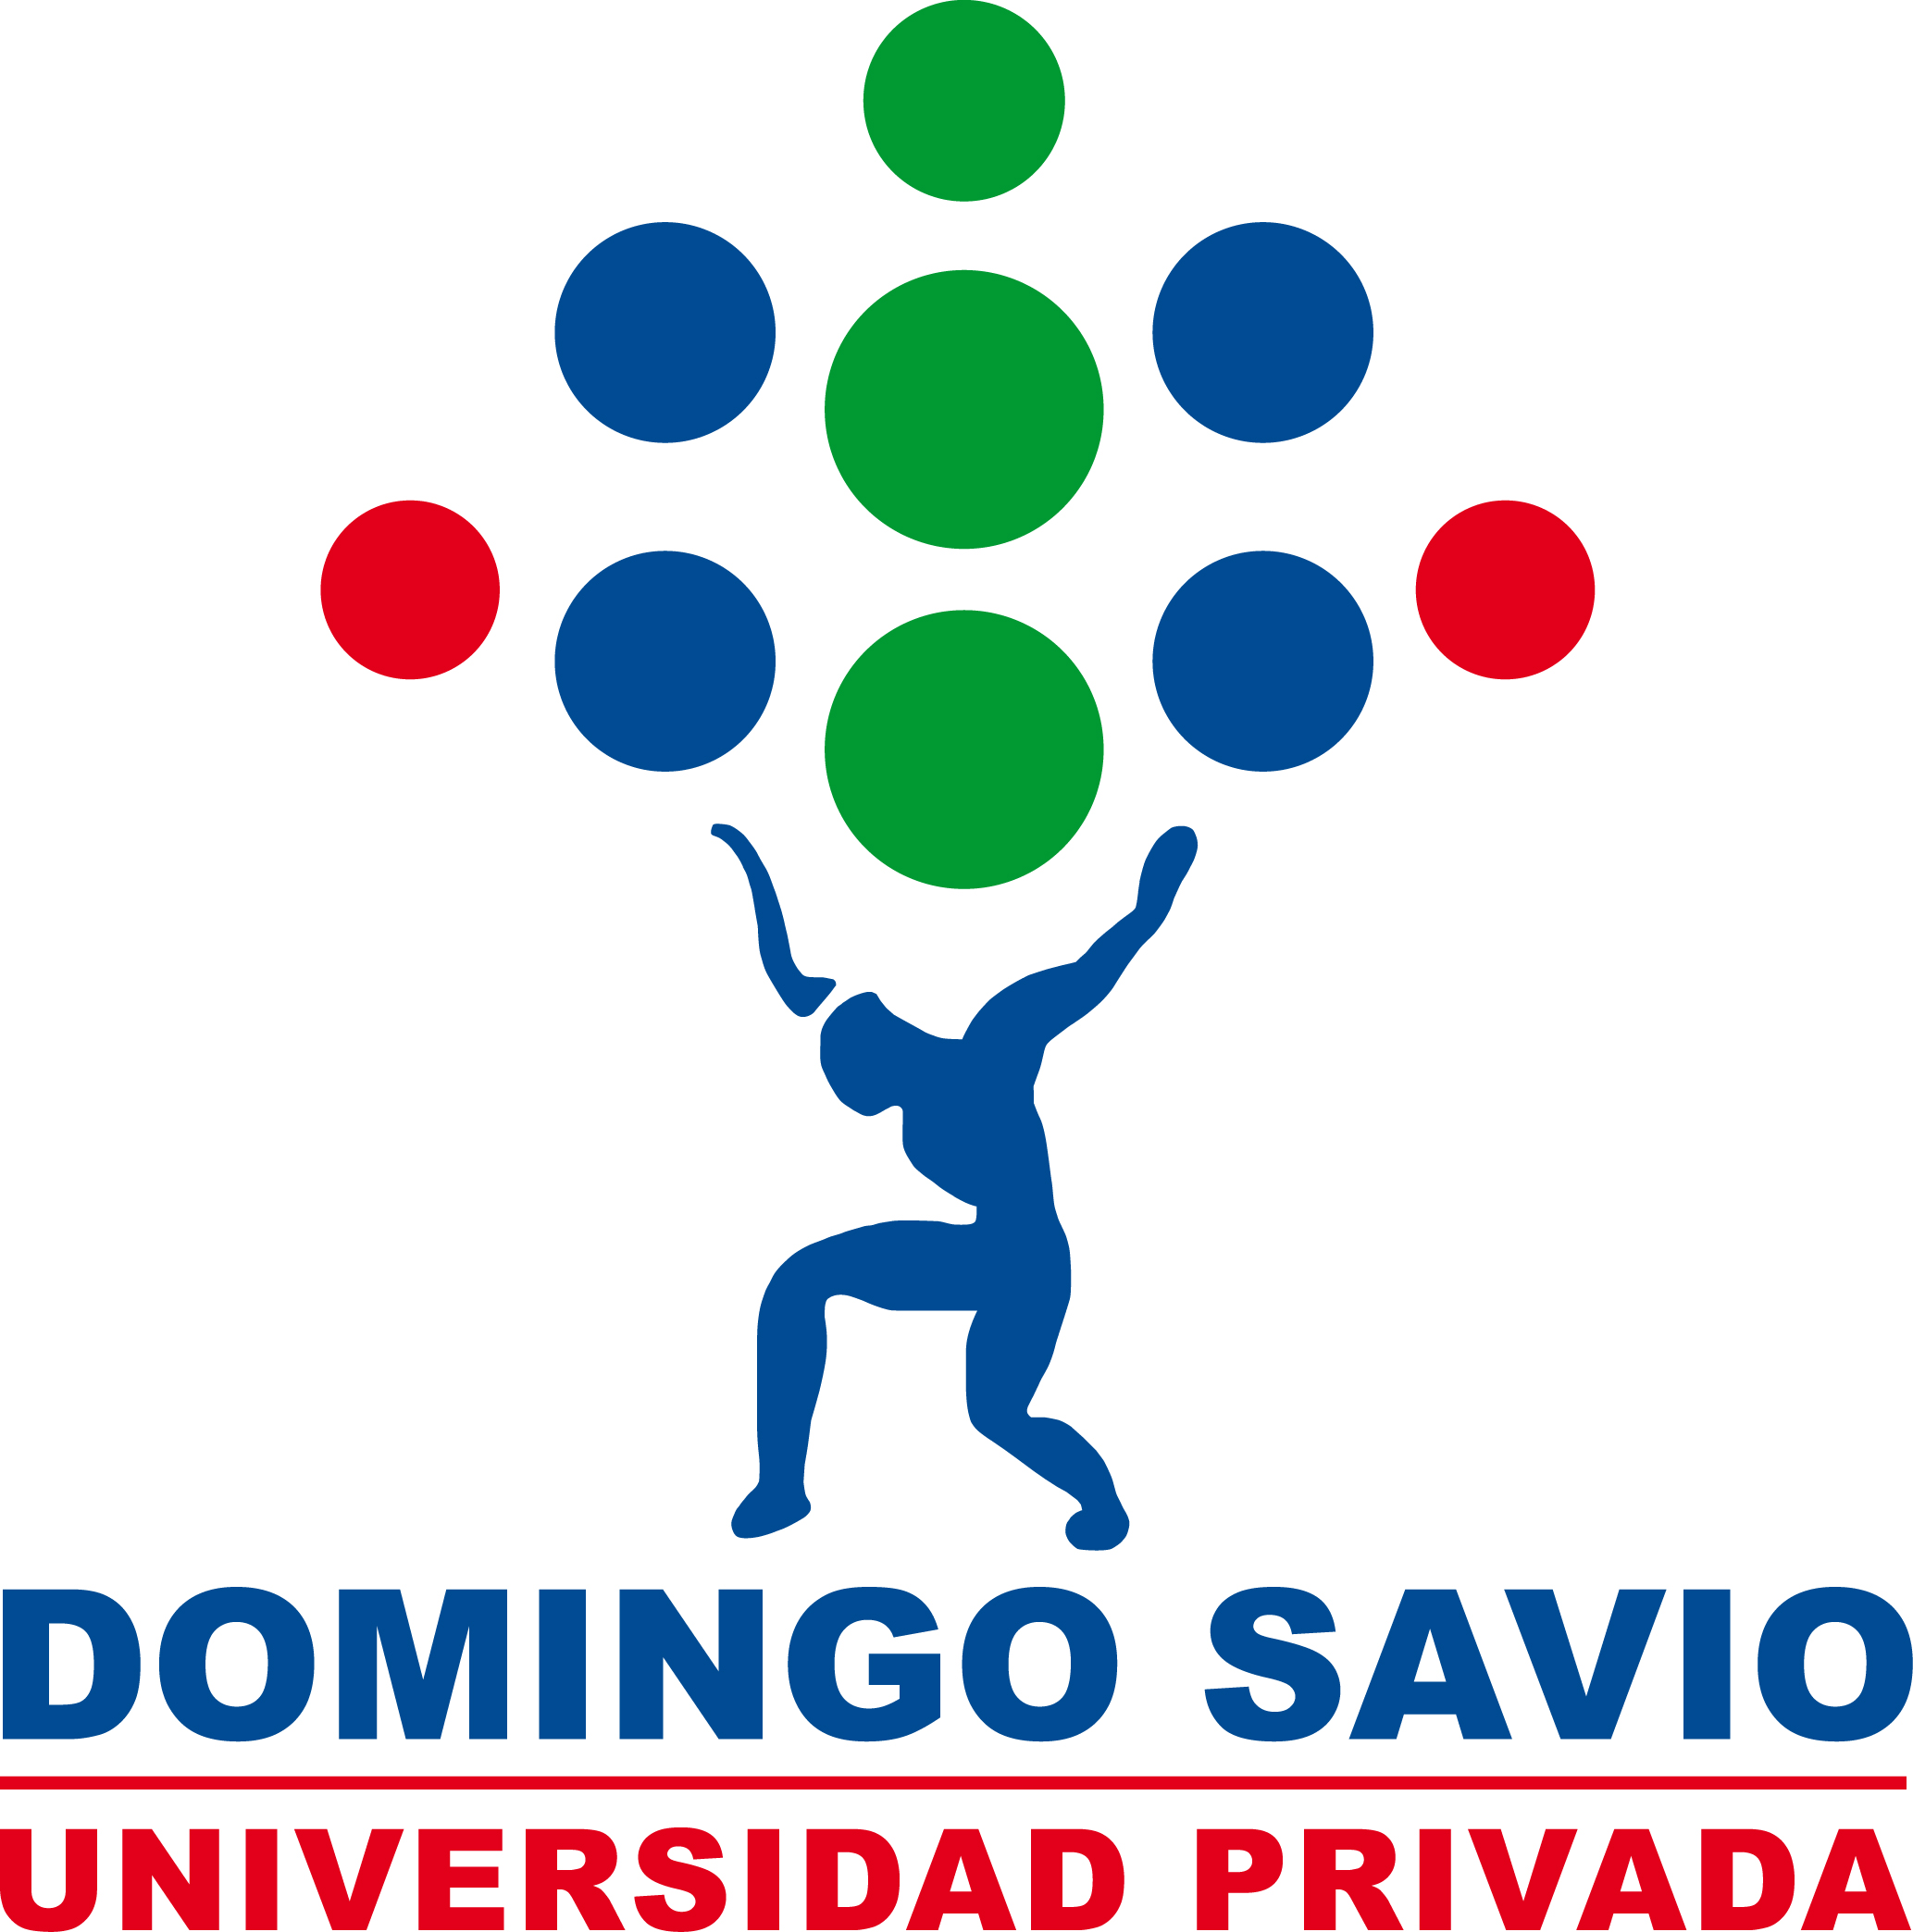 Universidad Privada Domingo Savio